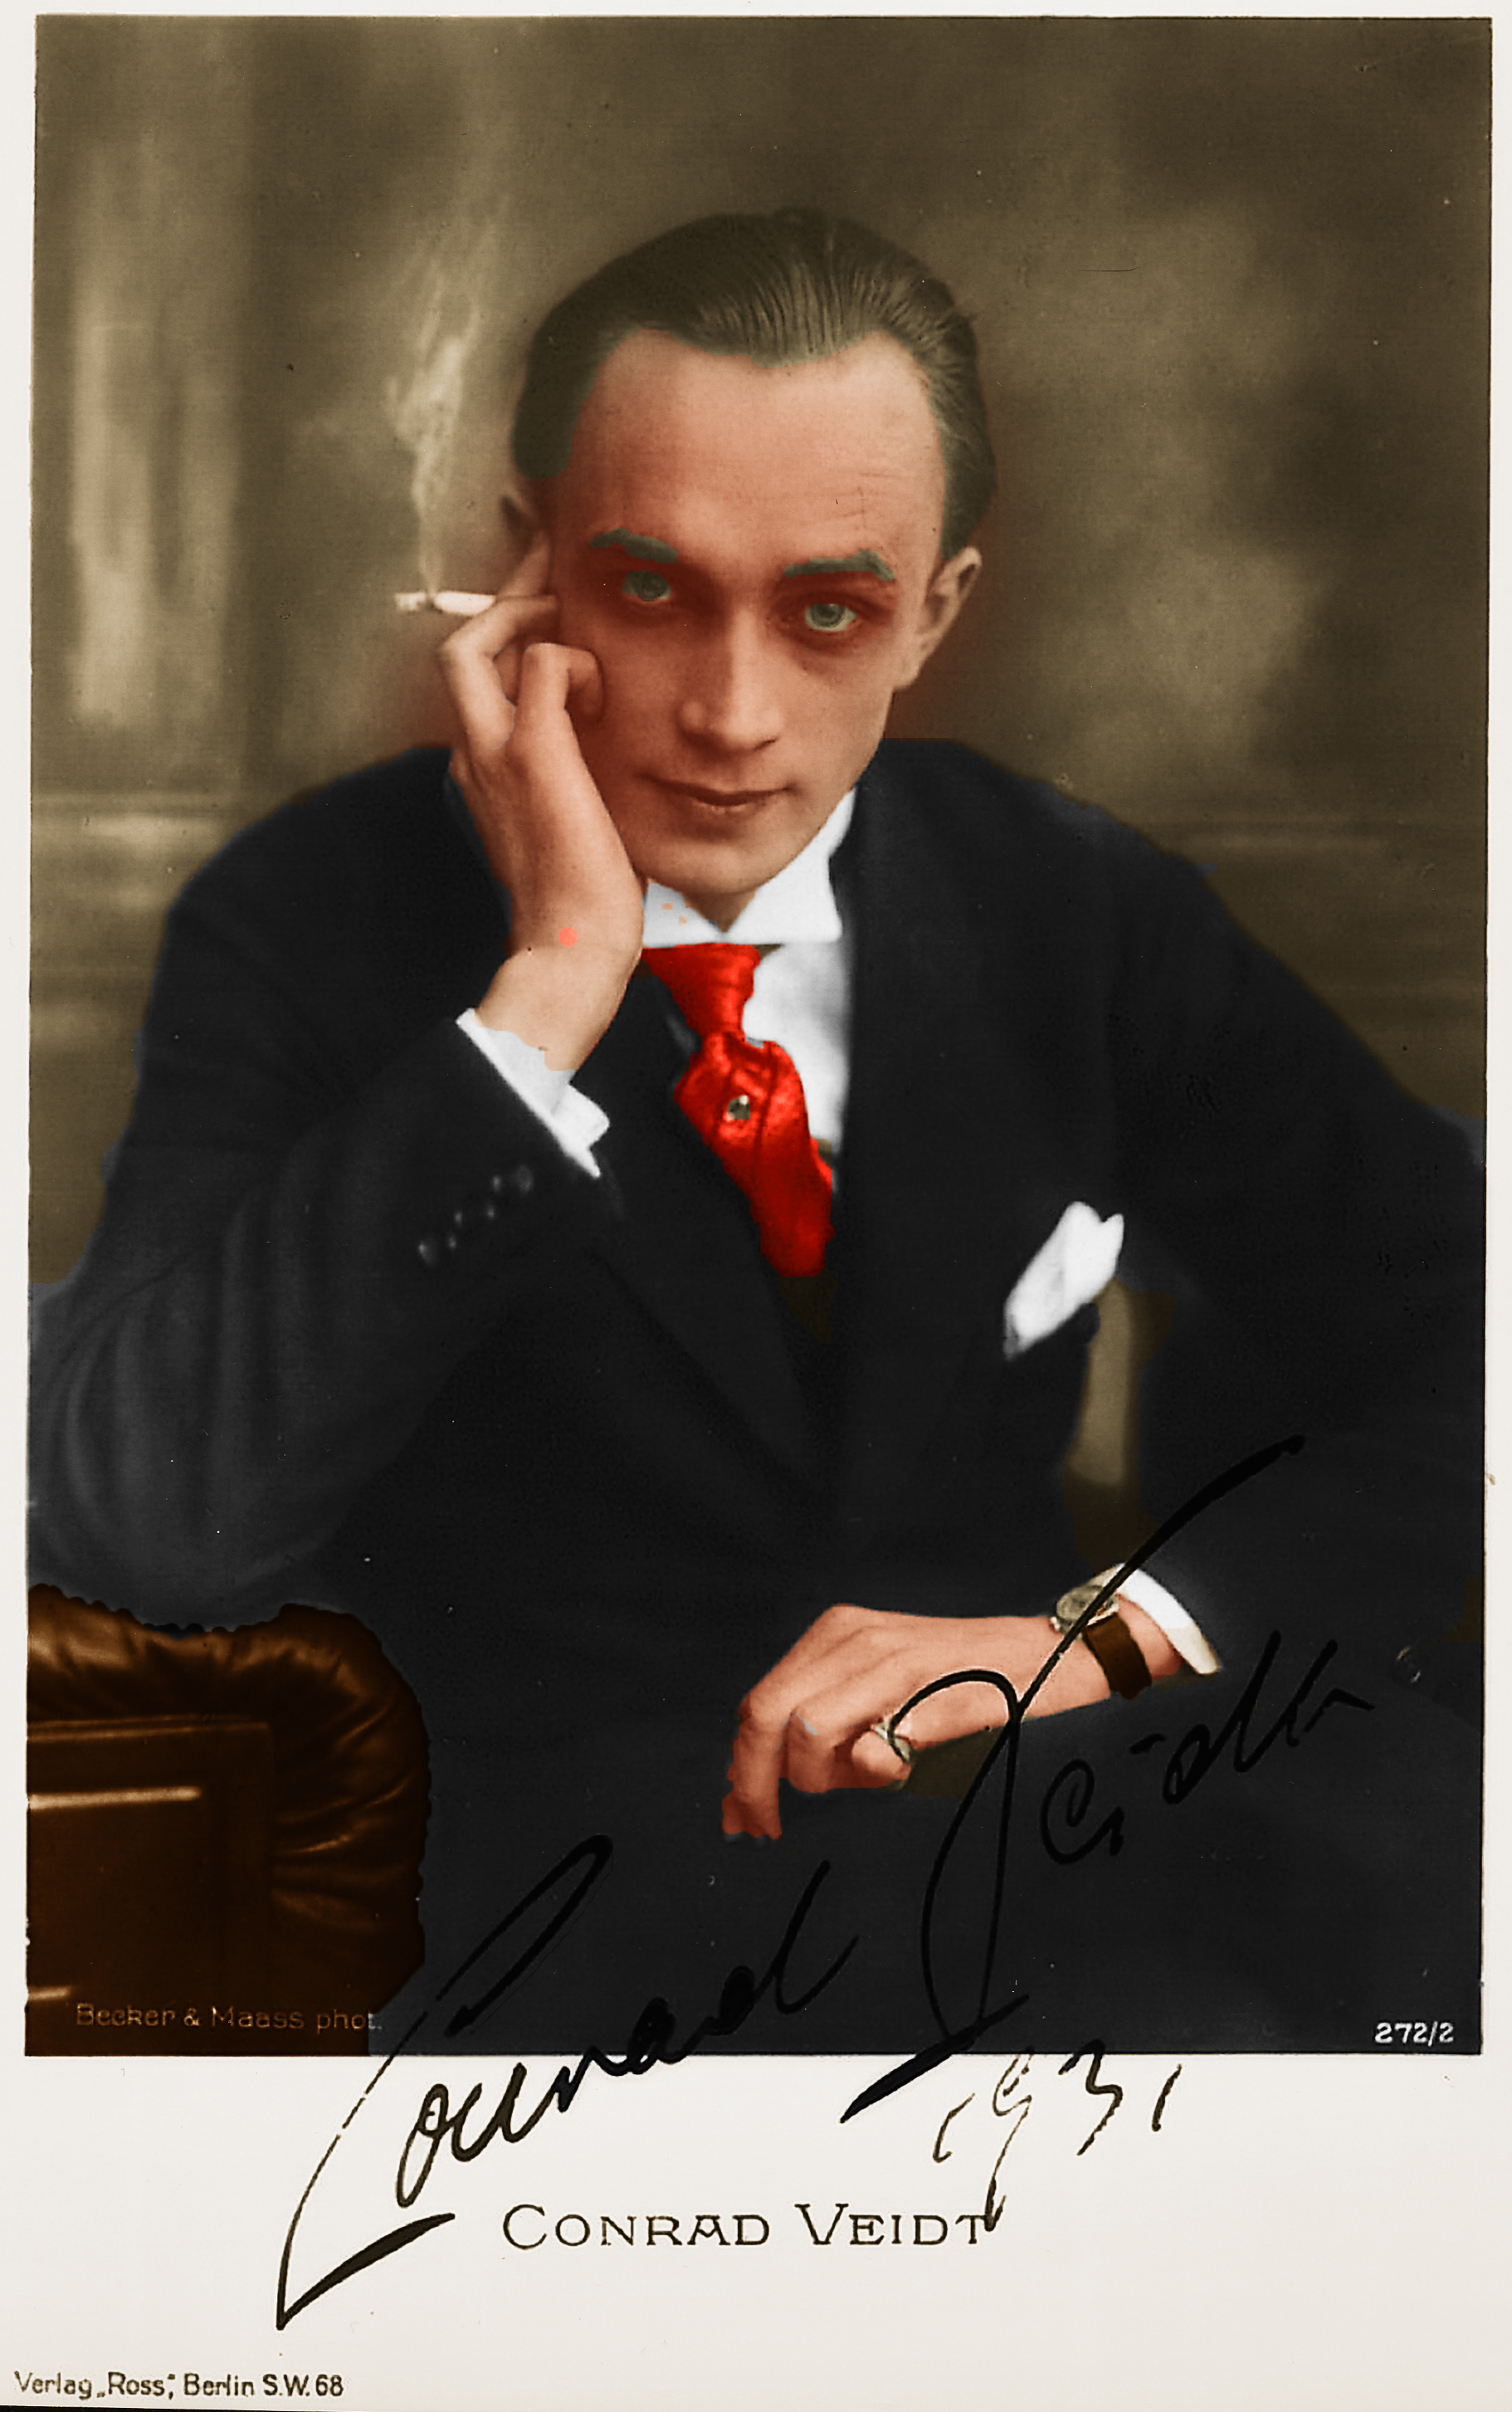 Conrad Veidt different from the others